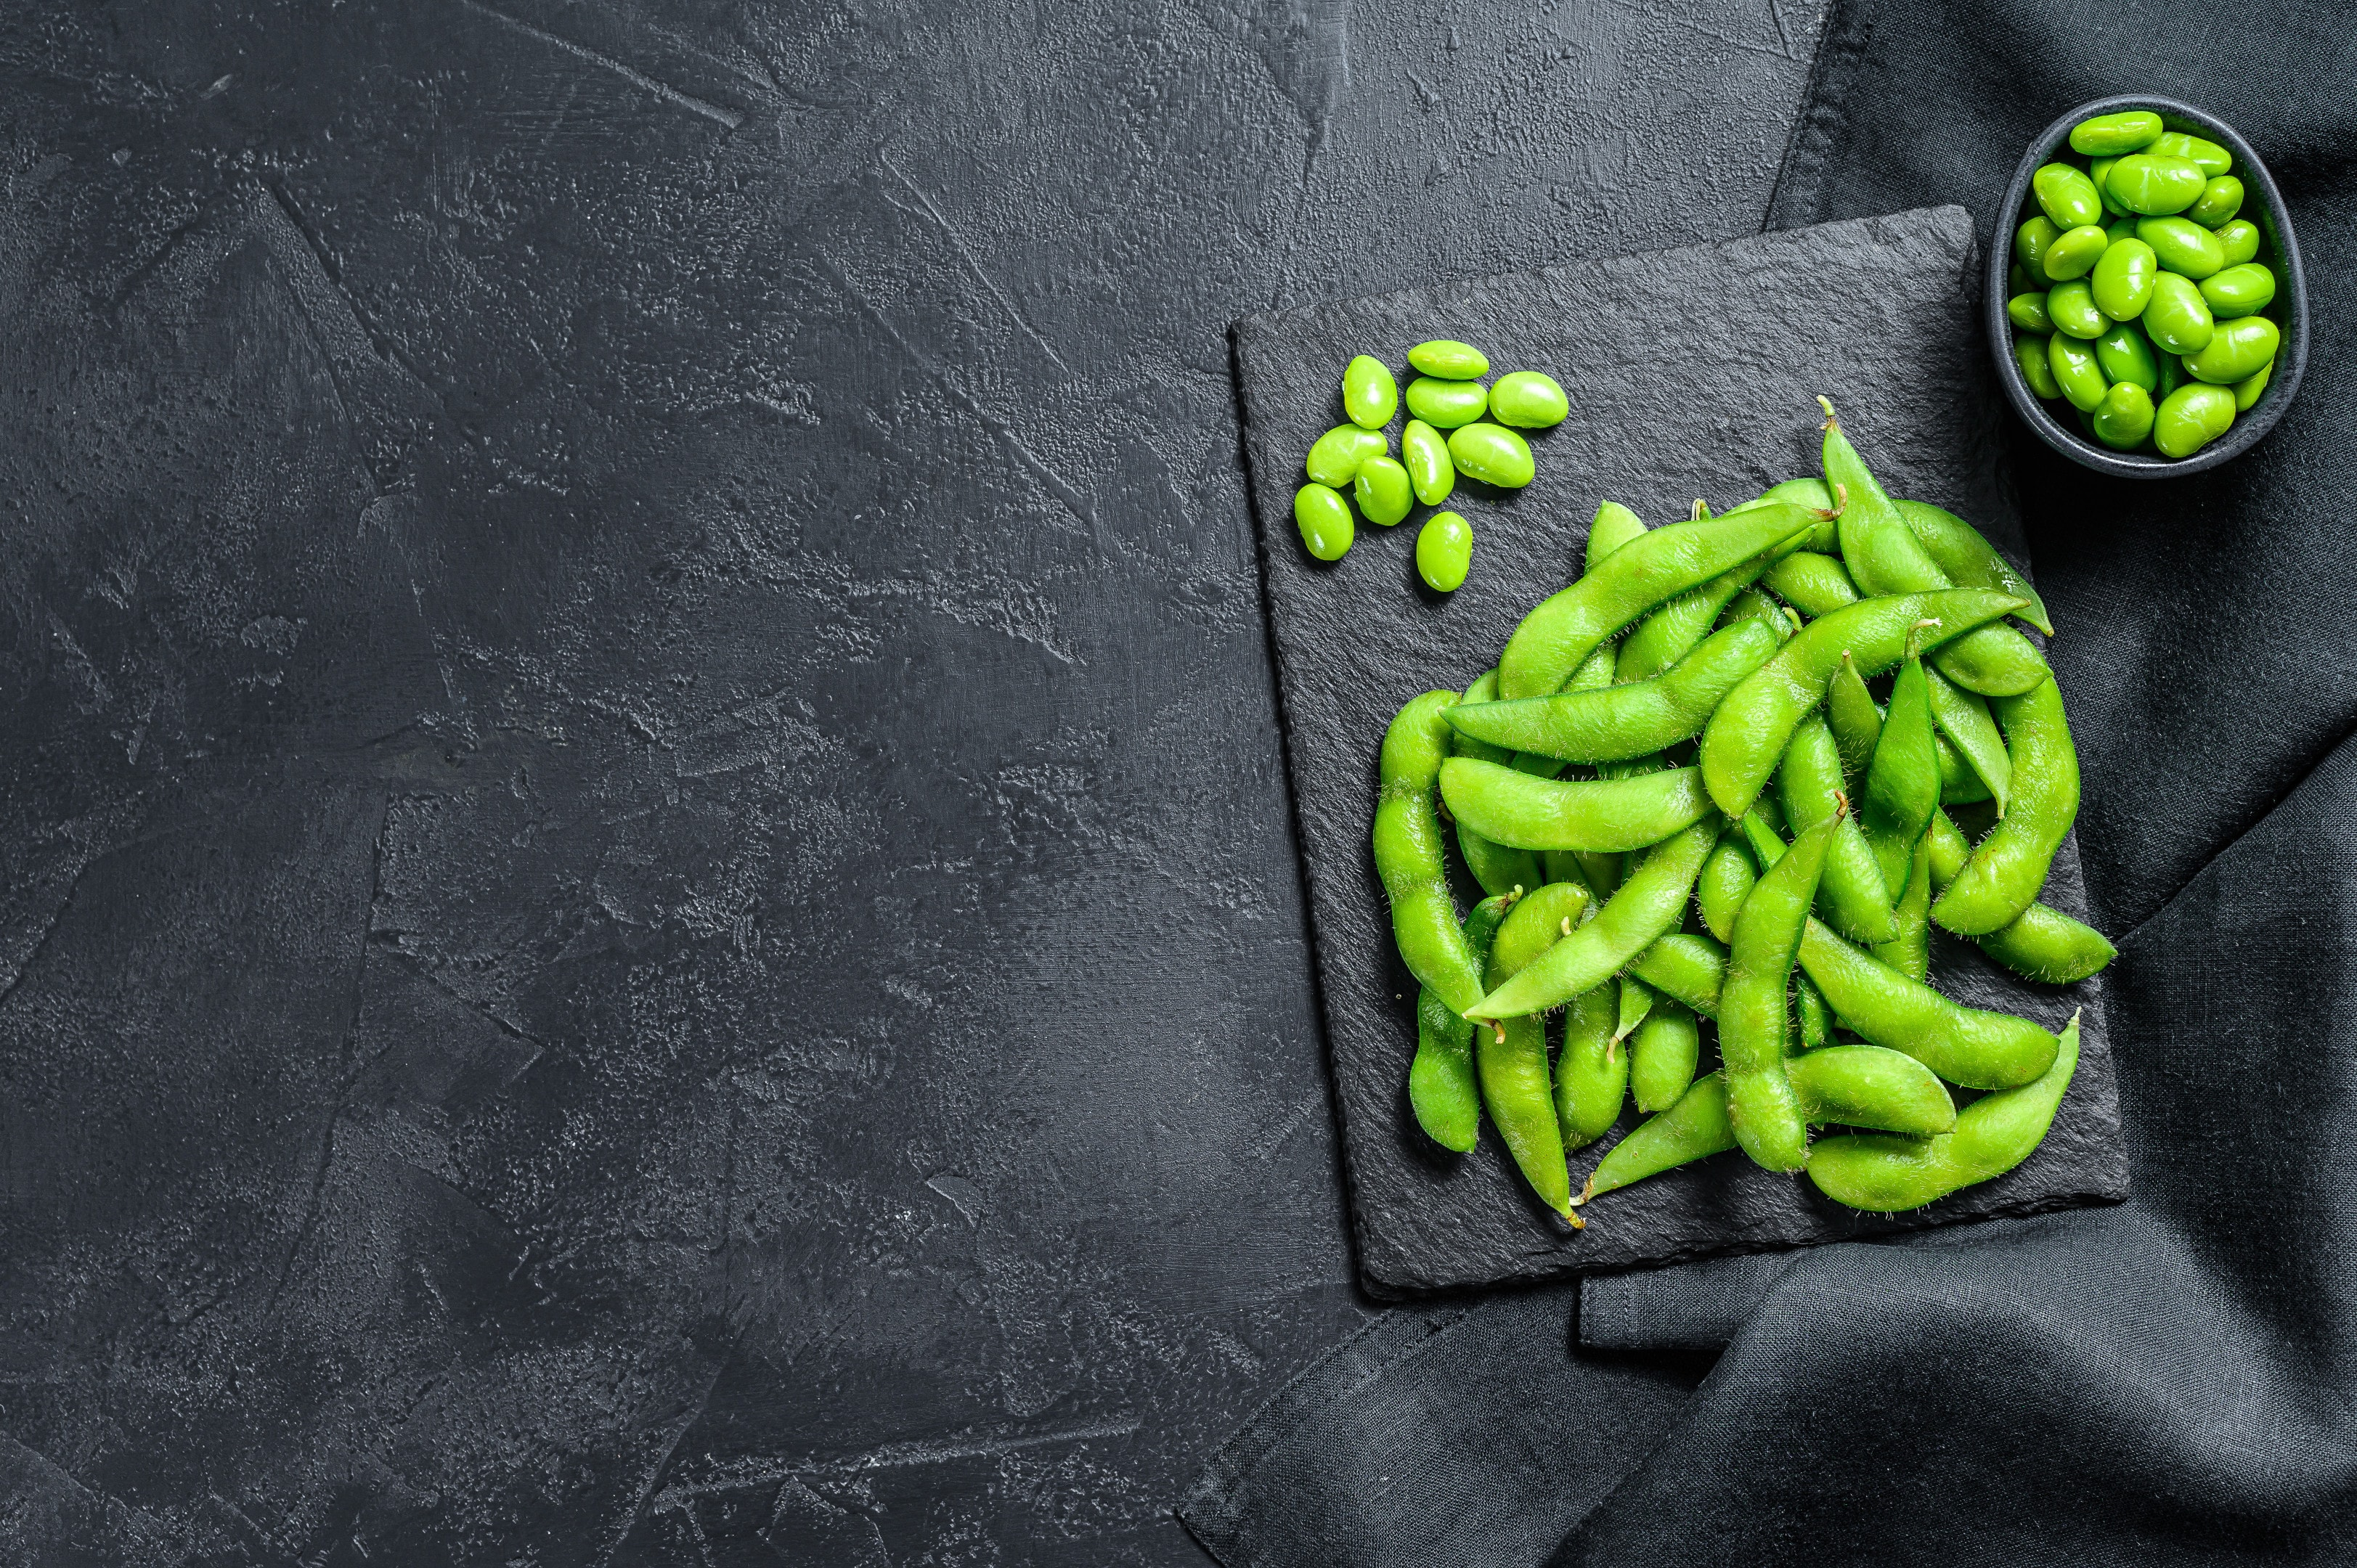 Raw green edamame soybeans on black stone plate